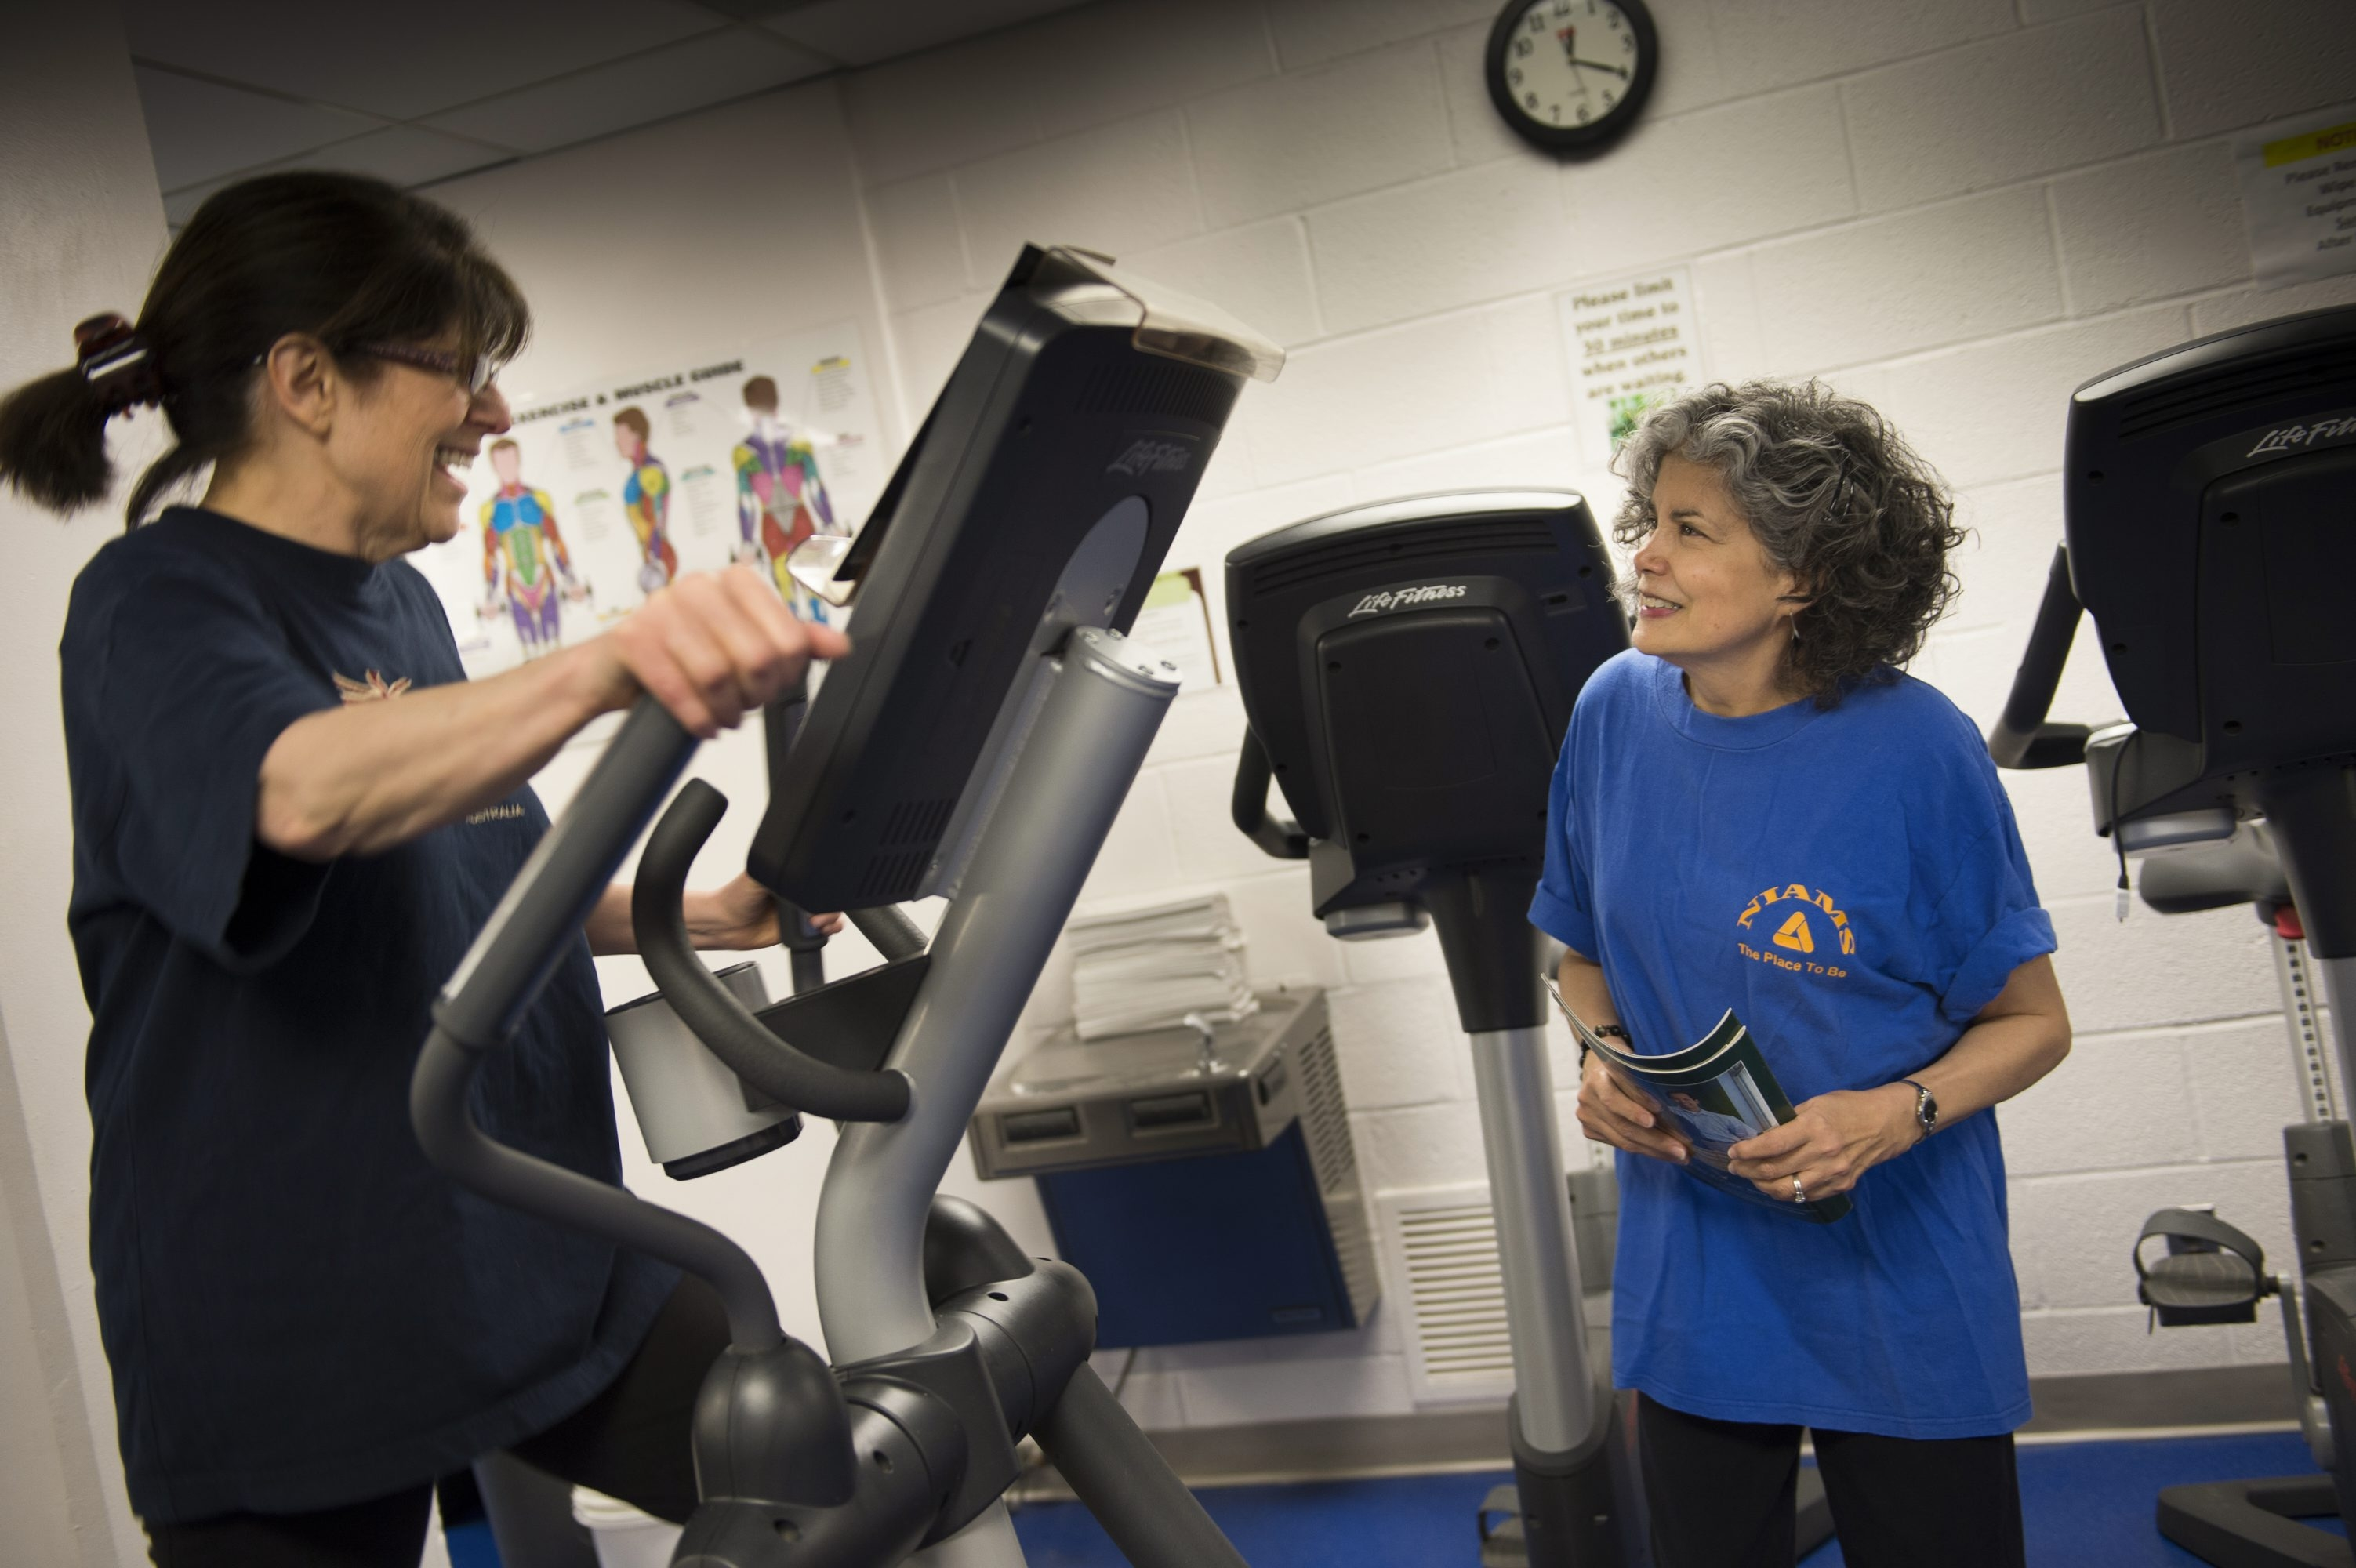 Ann Bodmer, left, and Robyn Strachan work out in a gym at the National Institutes of Health offices in Bethesda, Md. Many employers are offering programs designed to retain older workers.